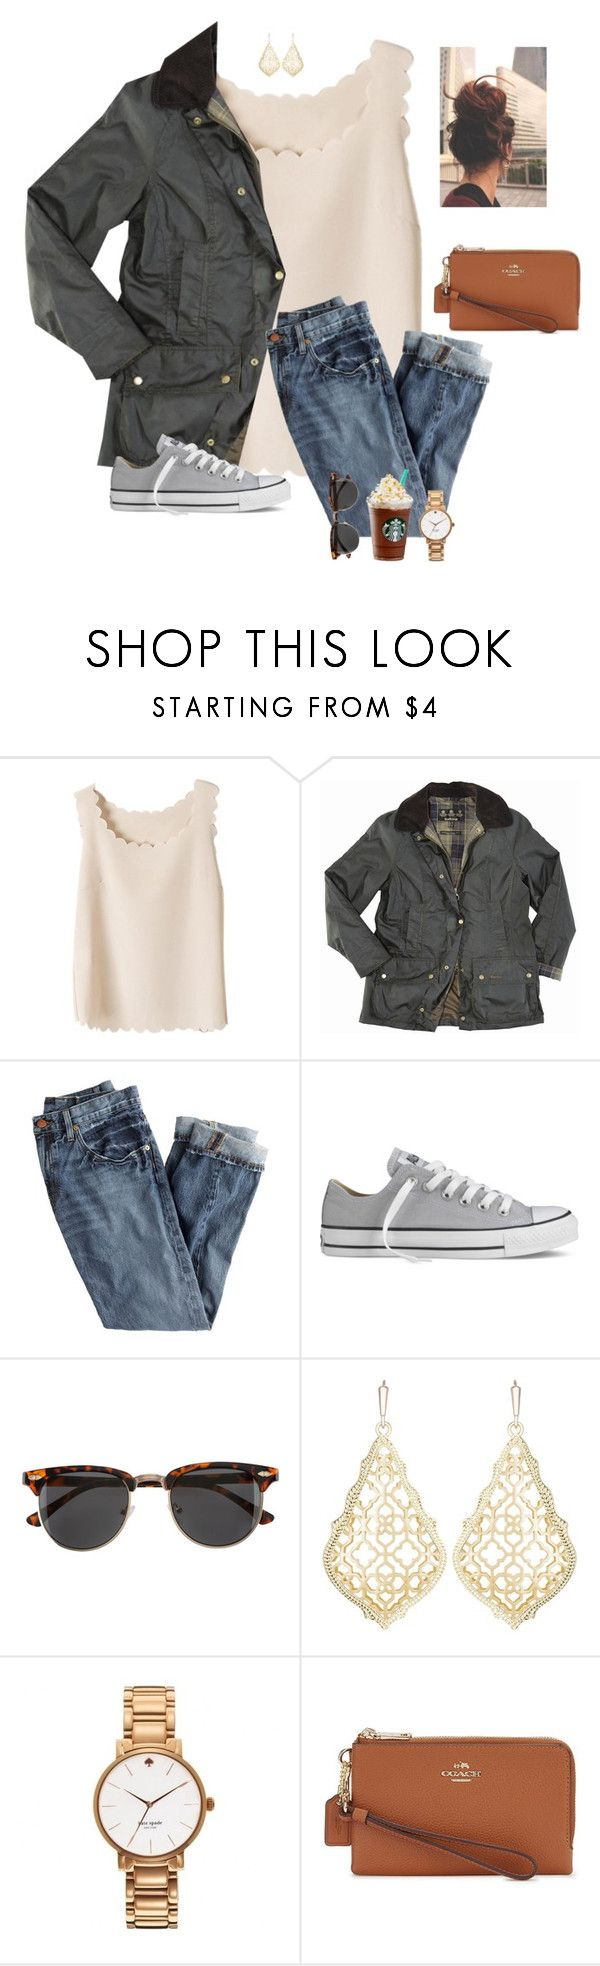 """Day 12/ I can't lift the weight no I can't lift the weight. You stand on my shoulders and my just breaks"" by raquate1232 ❤ liked on Polyvore featuring Barbour, J.Crew, Converse, H&M, Kendra Scott, Kate Spade, Coach and 15daysofShawnwKarina"